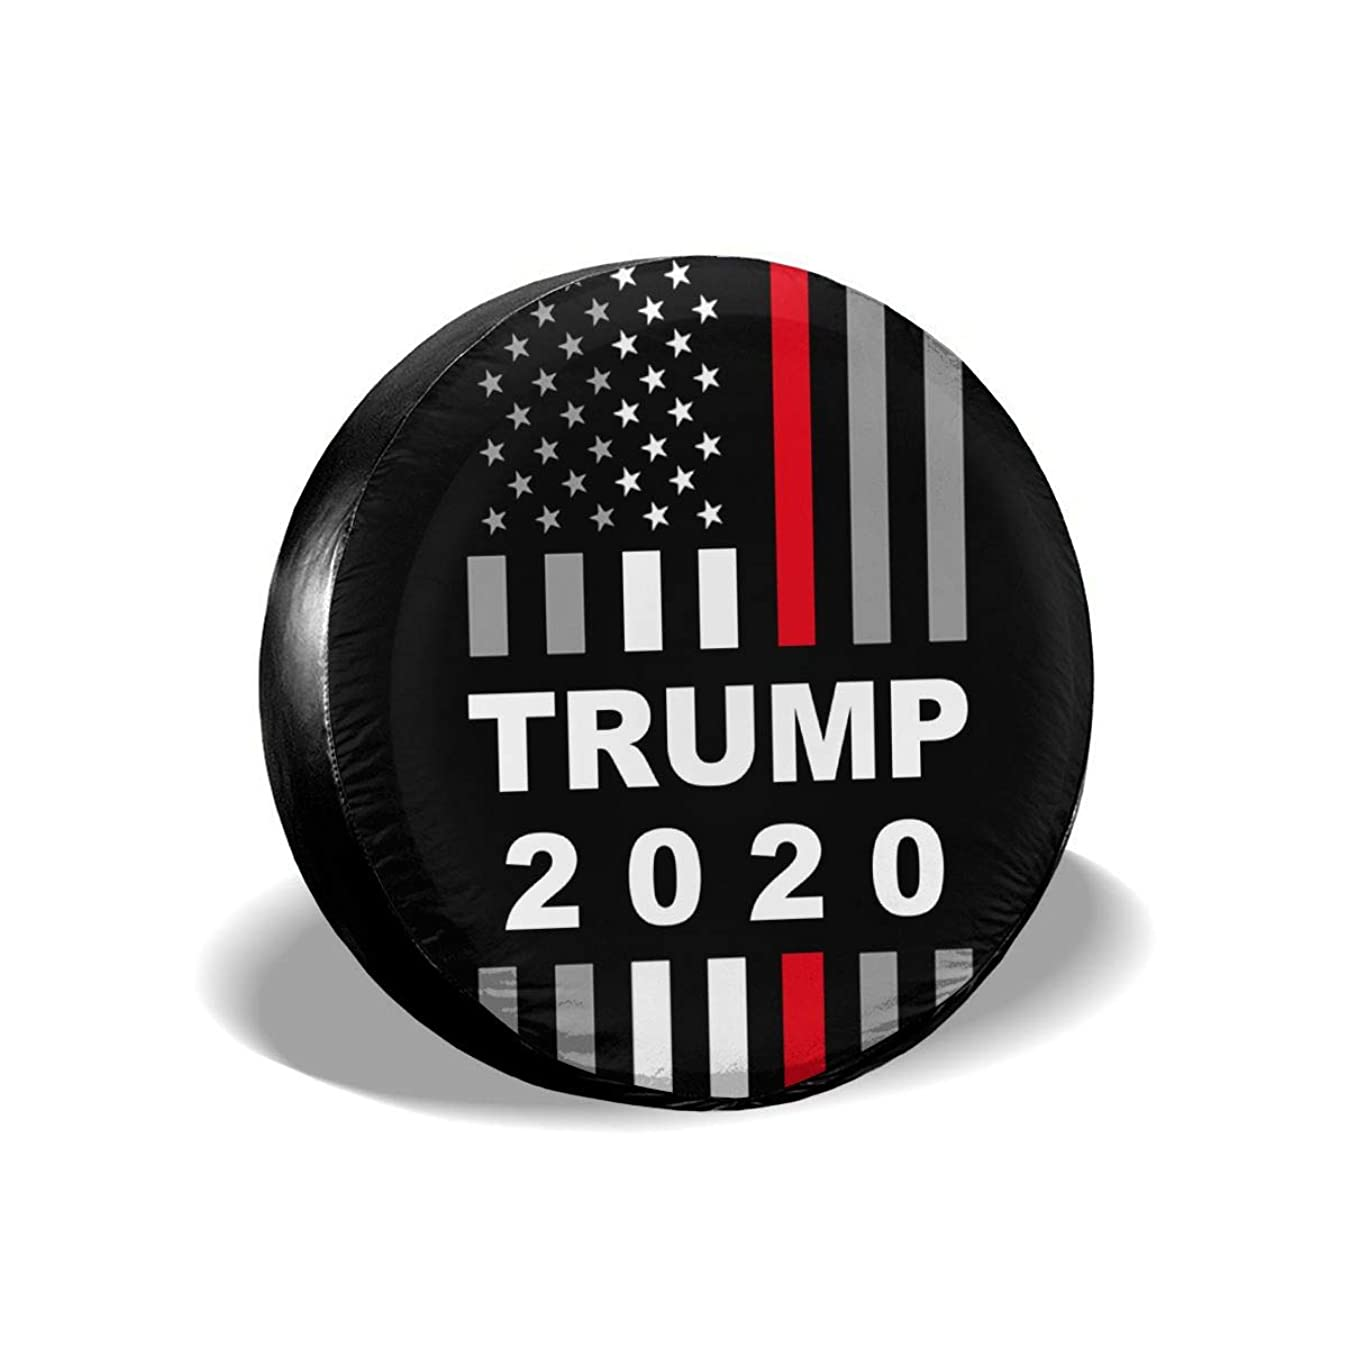 PINE-TREE-US Trump 2020 USA Thin Red Line Flag Spare Wheel Tire Cover Waterproof Dust-Proof Fit for Trailer, RV, SUV and Many Vehicle 14